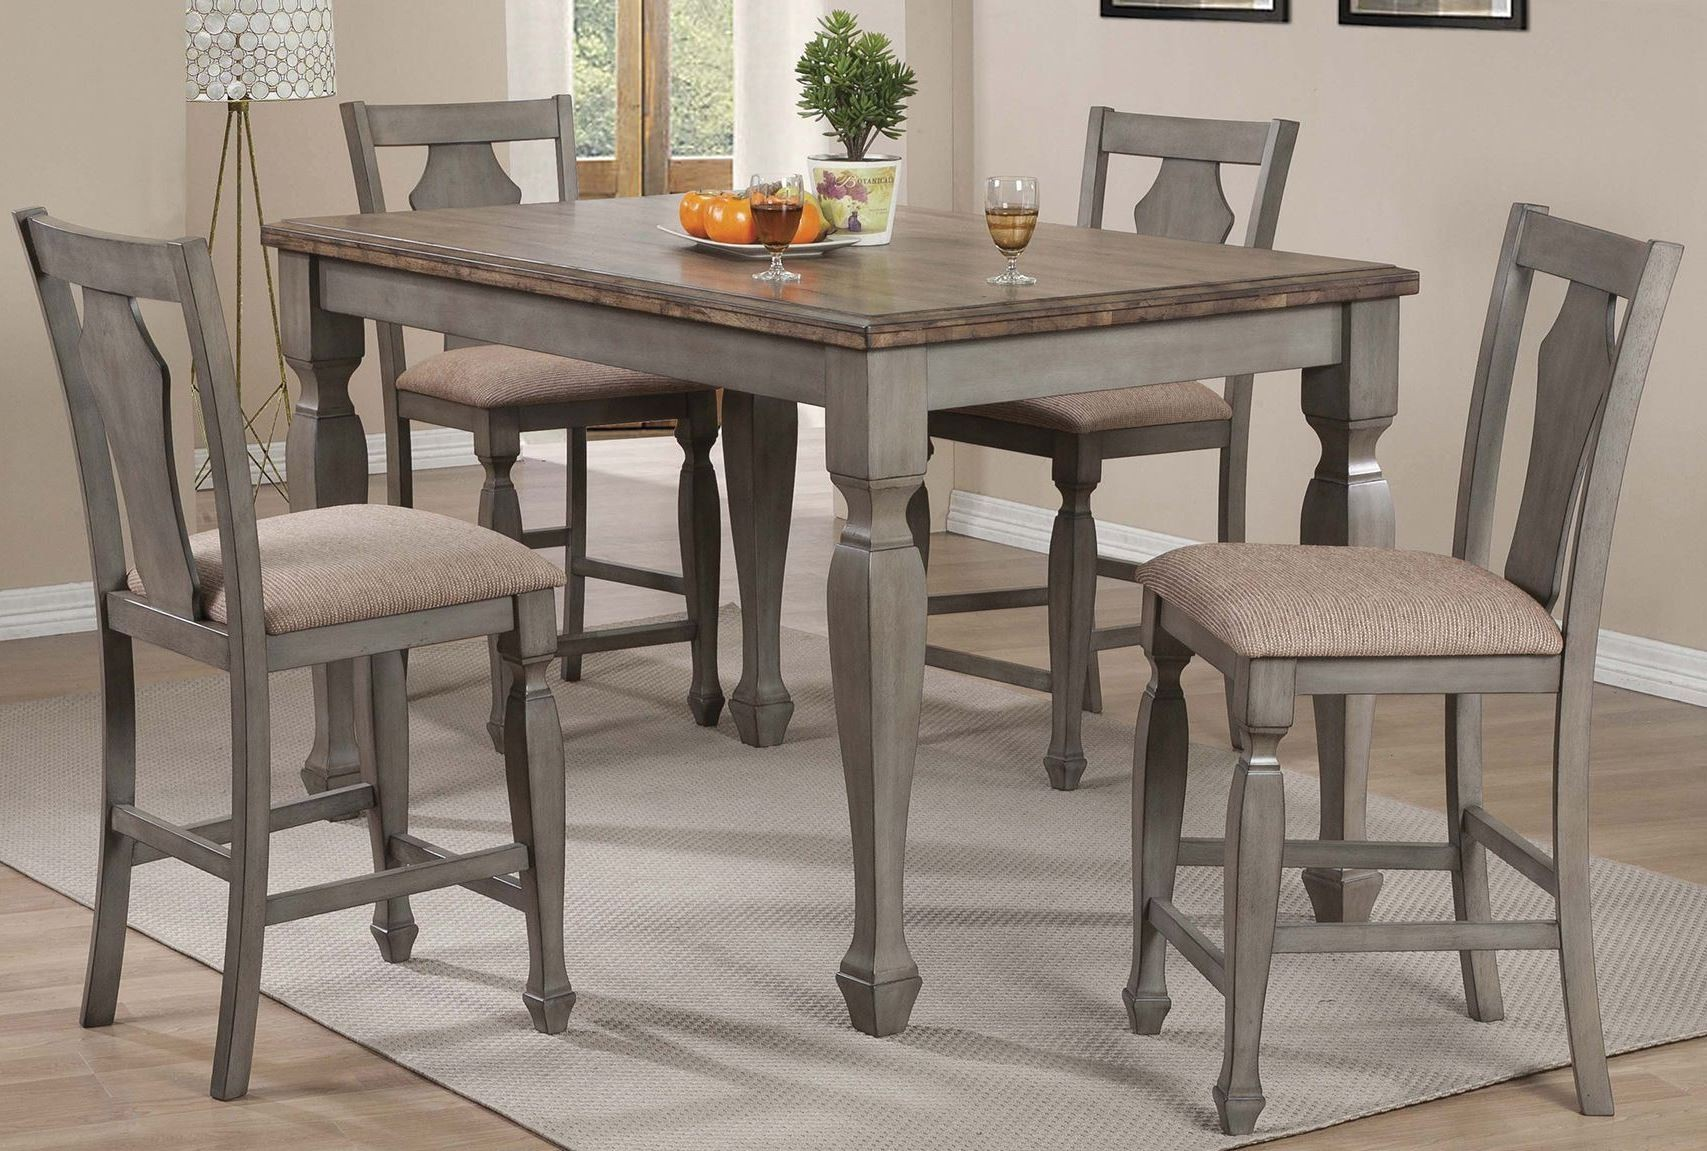 White furniture company dining room set